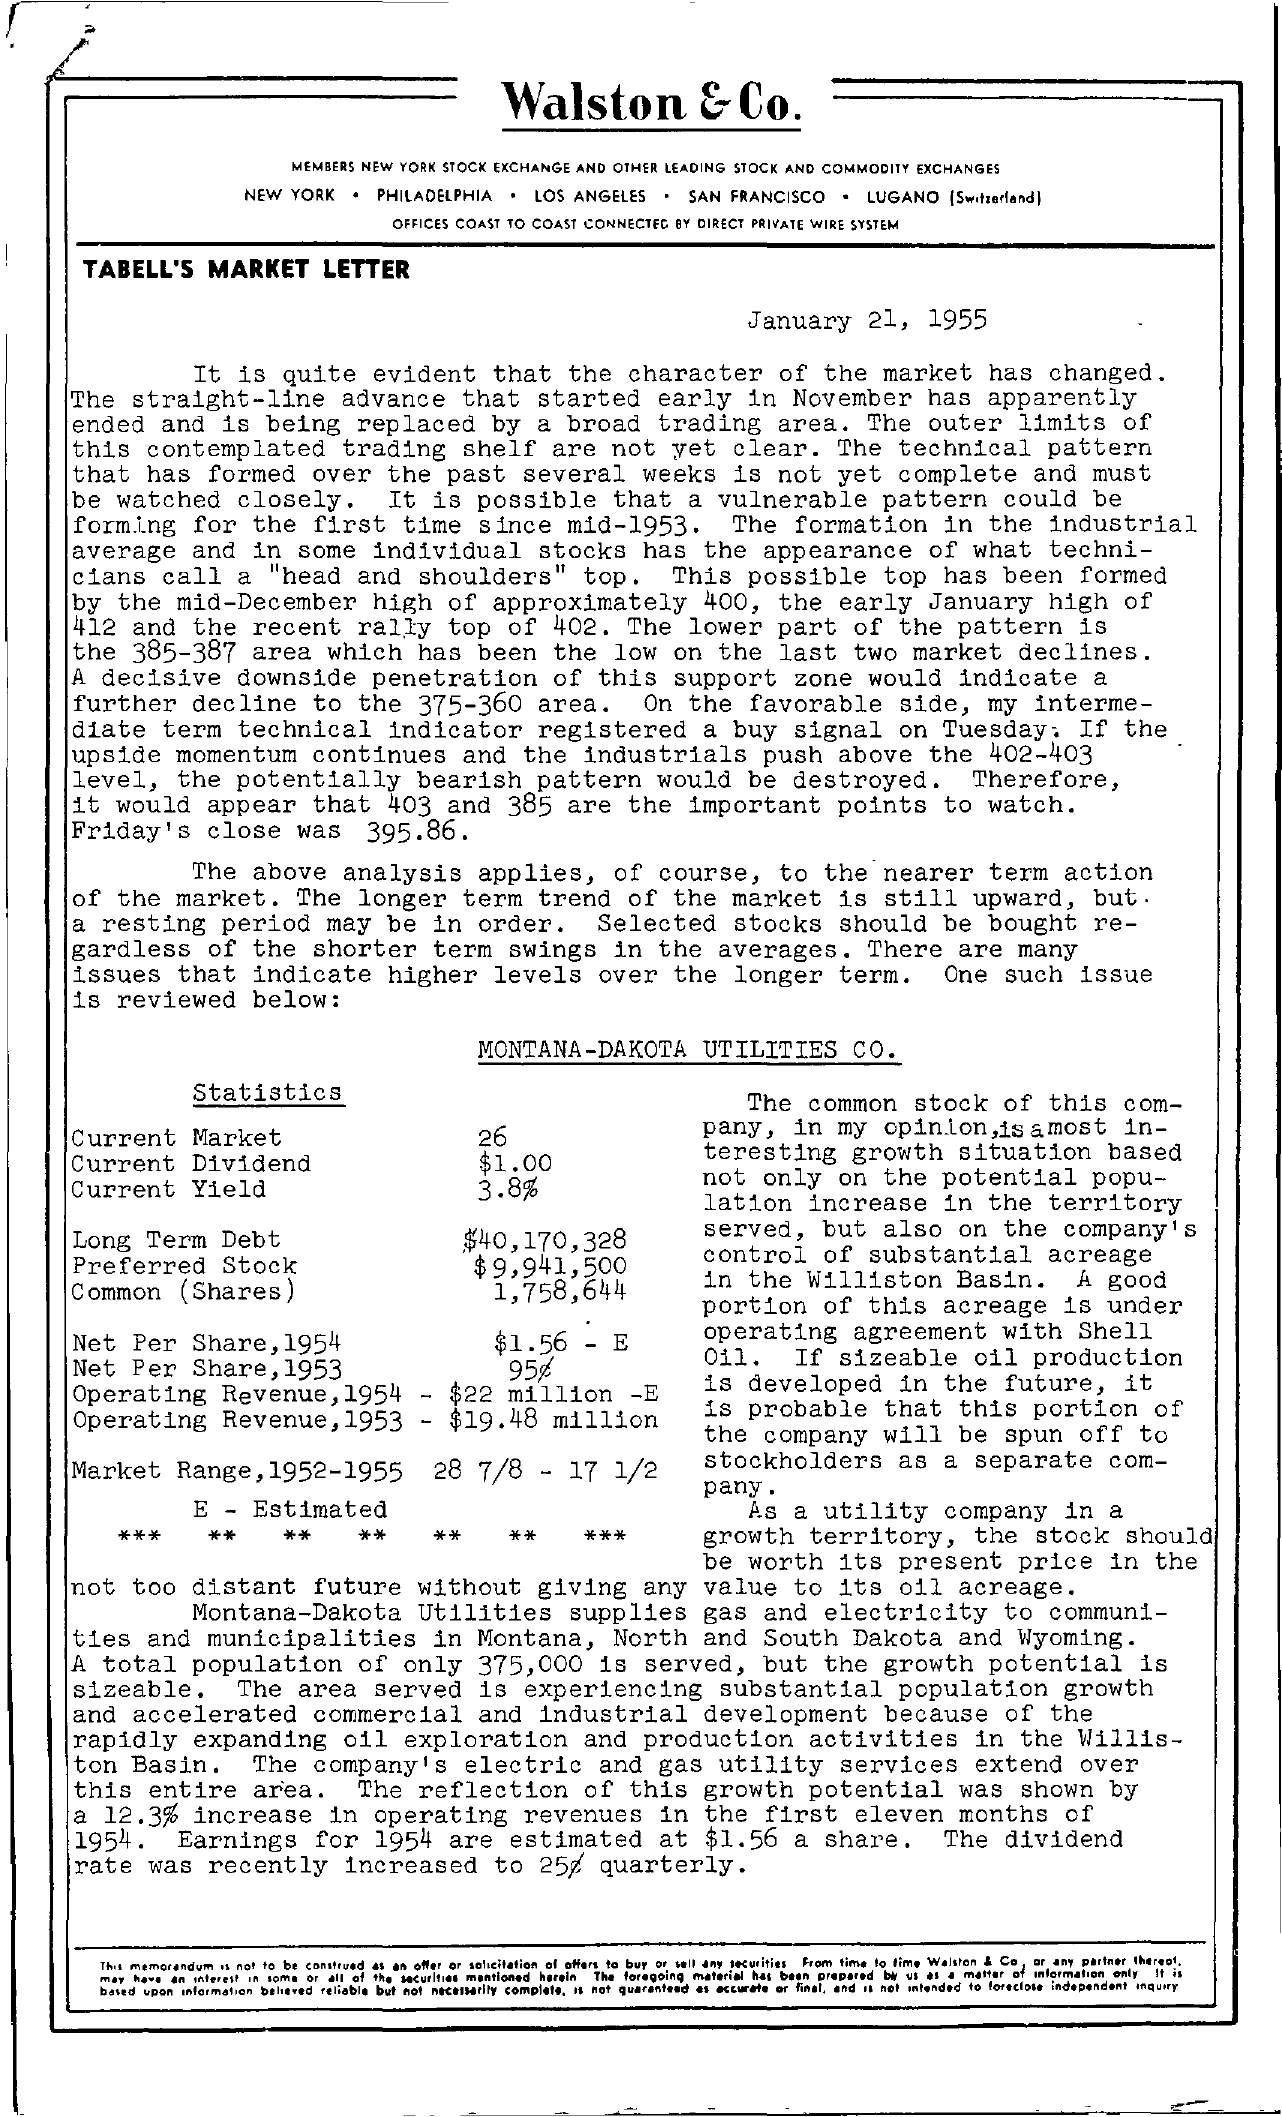 Tabell's Market Letter - January 21, 1955 page 1